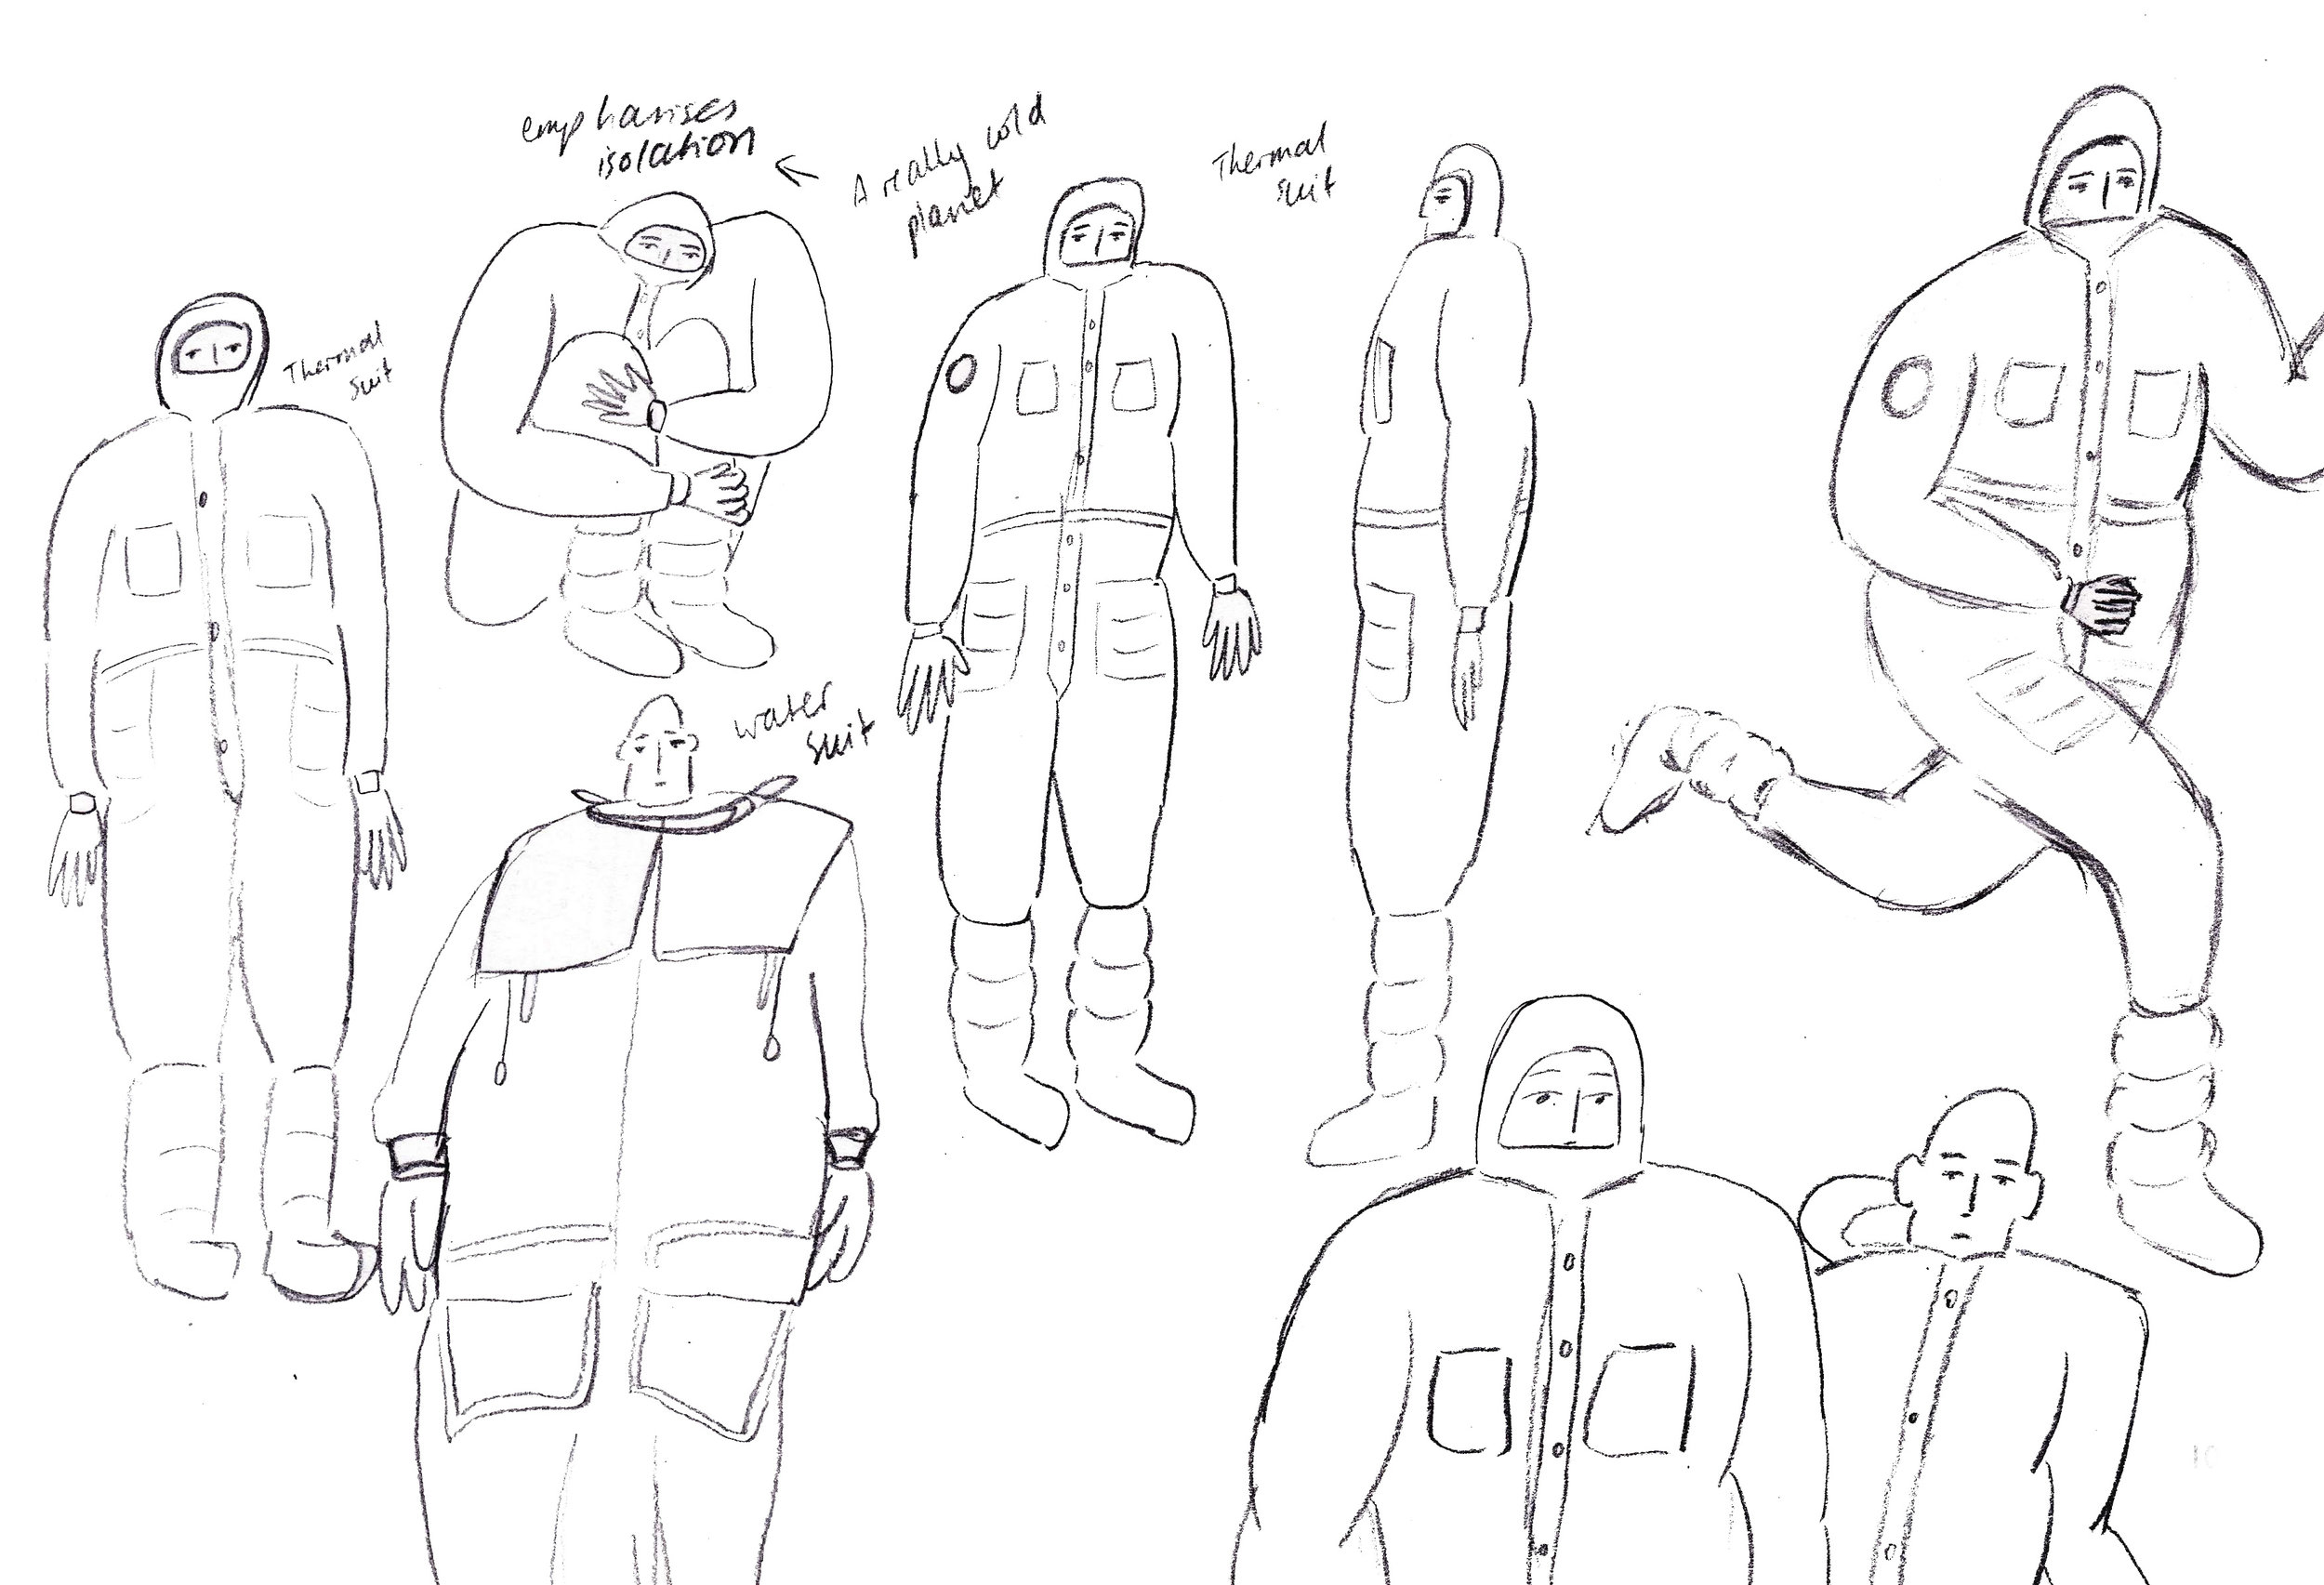 contact character sketches.jpg